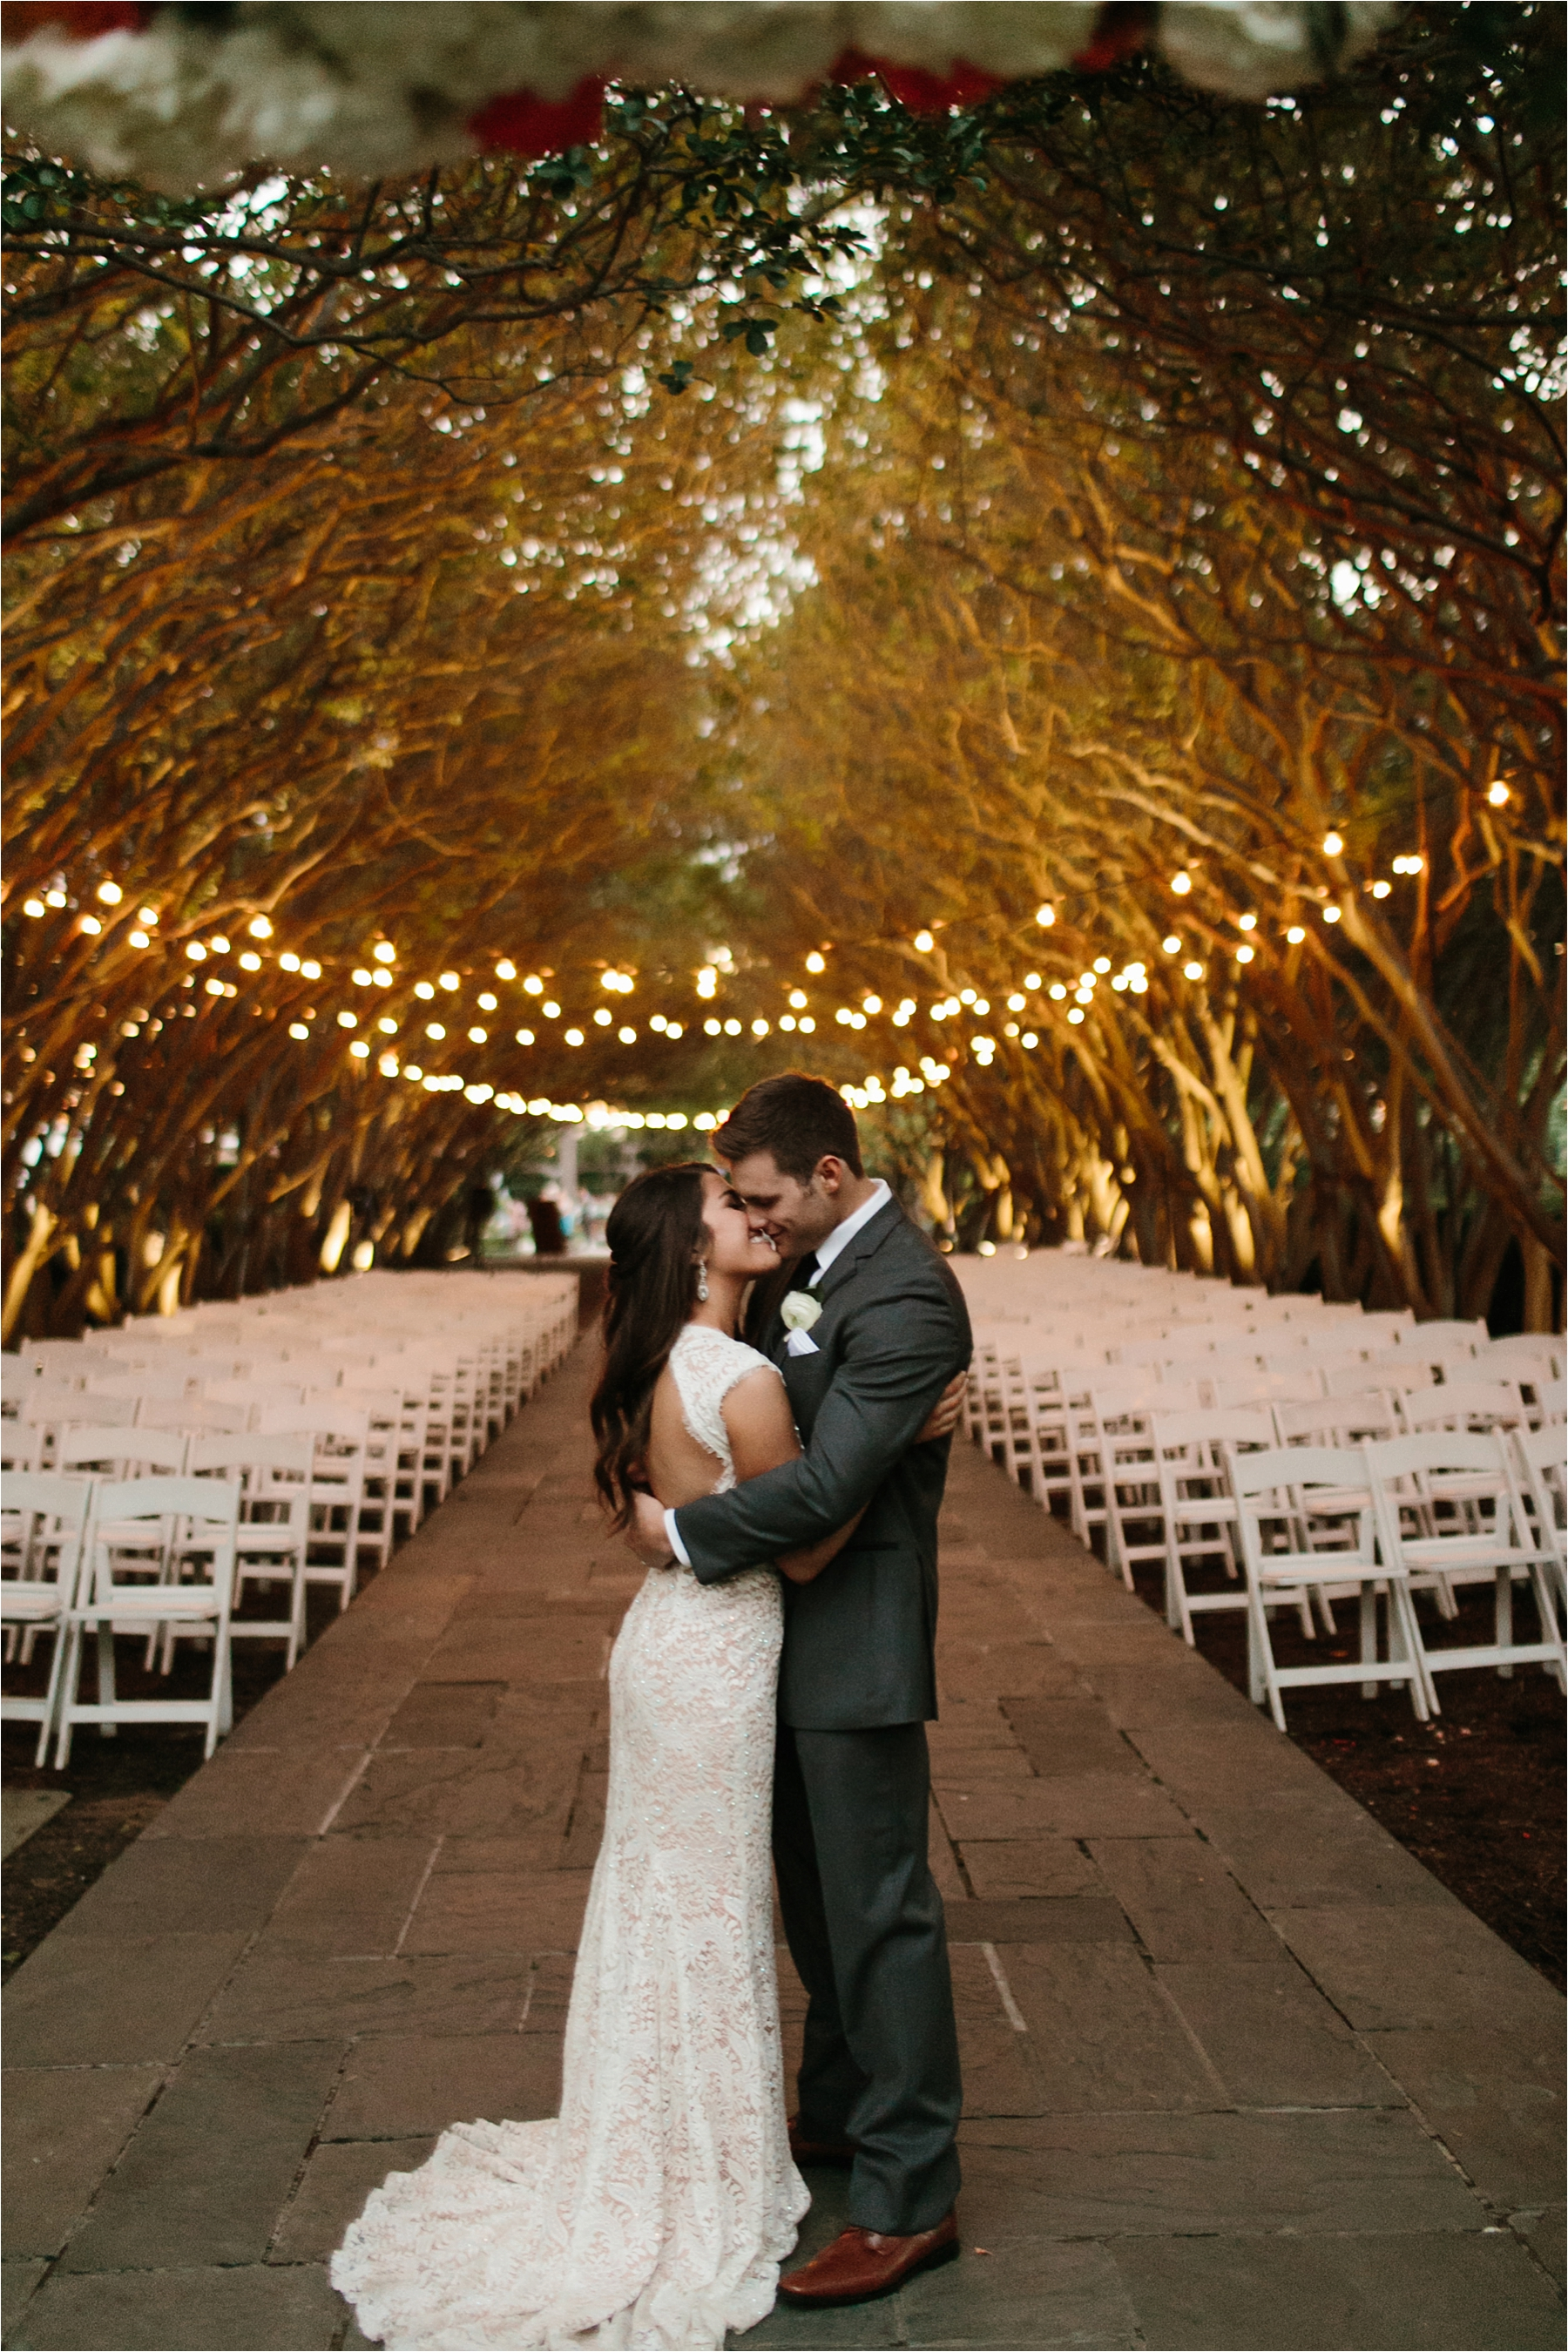 Devyn + Caden __ a Dallas Arboretum Garden Style Wedding by North Texas Wedding Photographer Rachel Meagan Photography __ 122